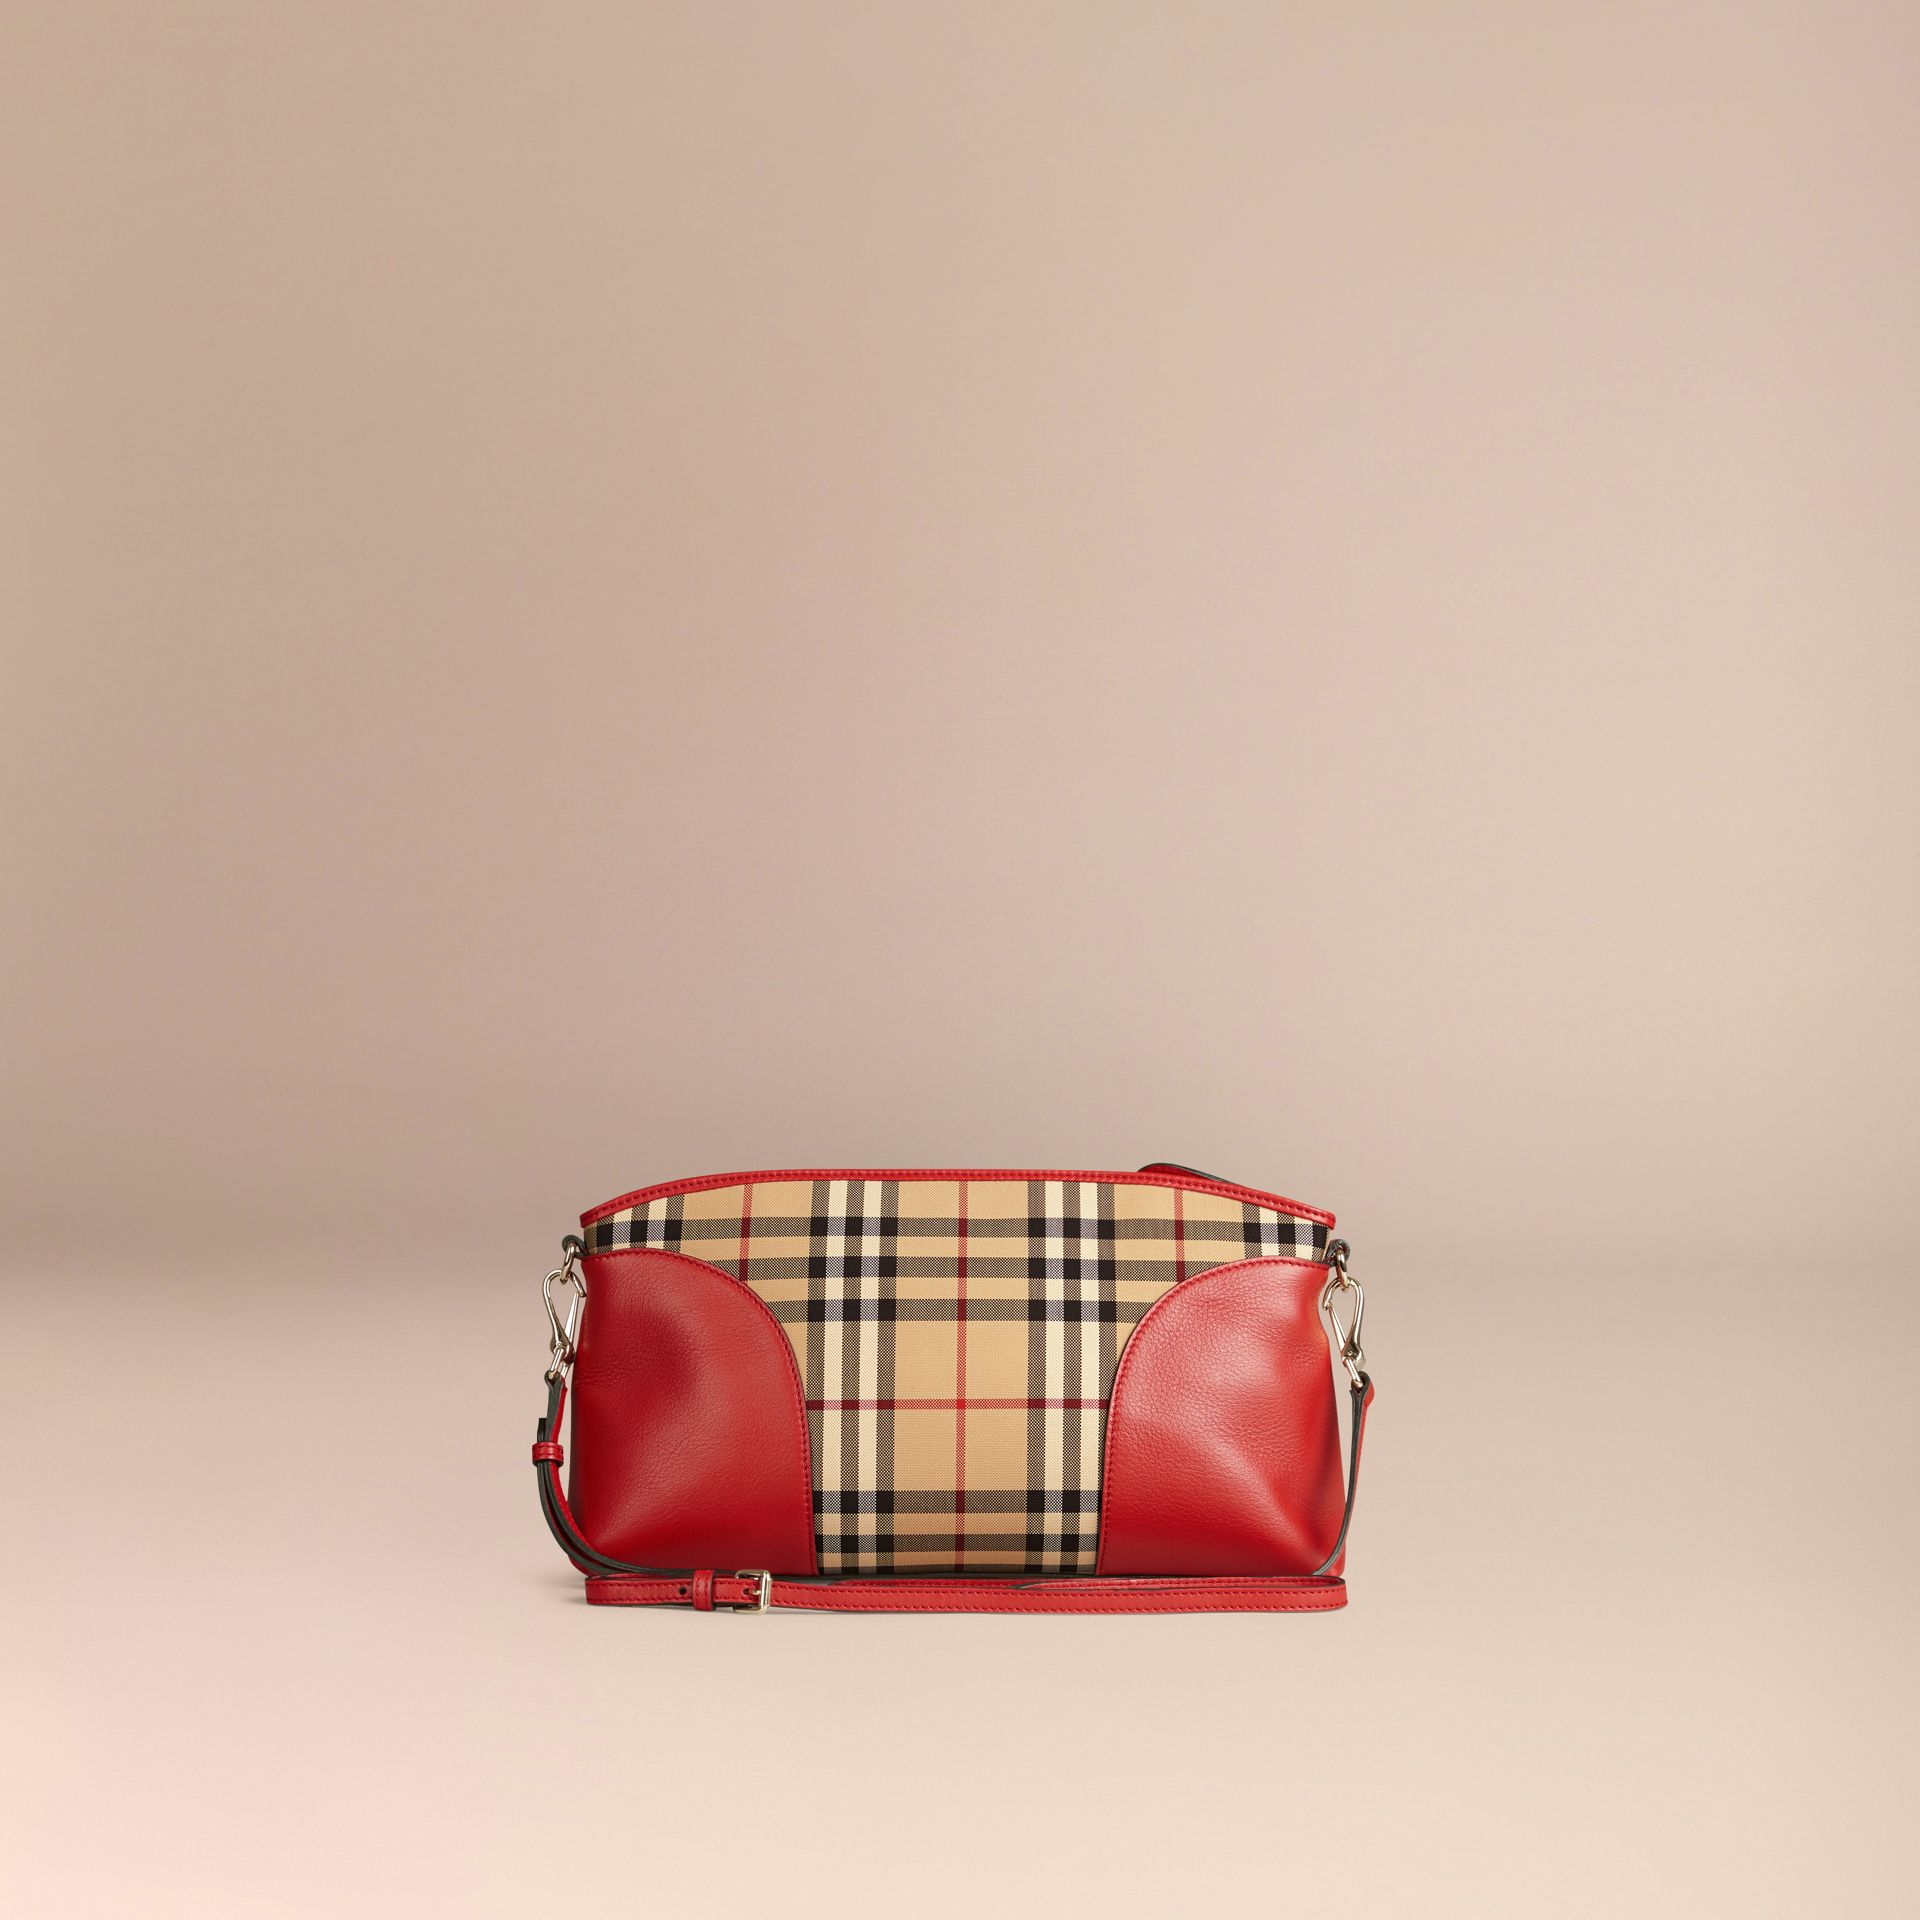 Honey/parade red Horseferry Check and Leather Clutch Bag Honey/parade Red - gallery image 3